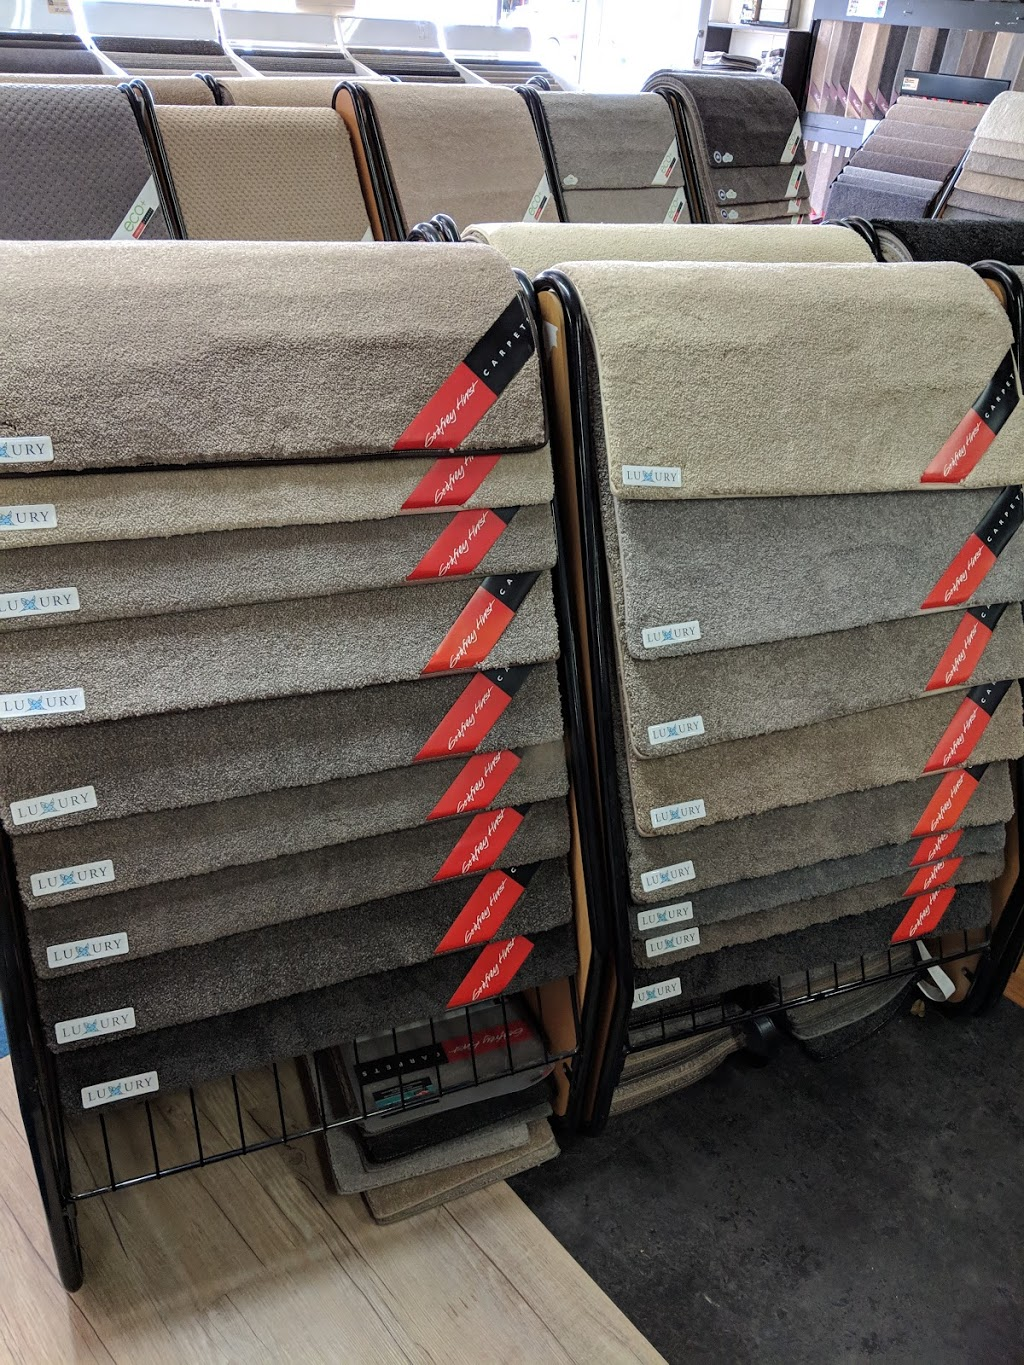 R&R Carpets | home goods store | 22 Scarba St, Coffs Harbour NSW 2450, Australia | 0266521415 OR +61 2 6652 1415